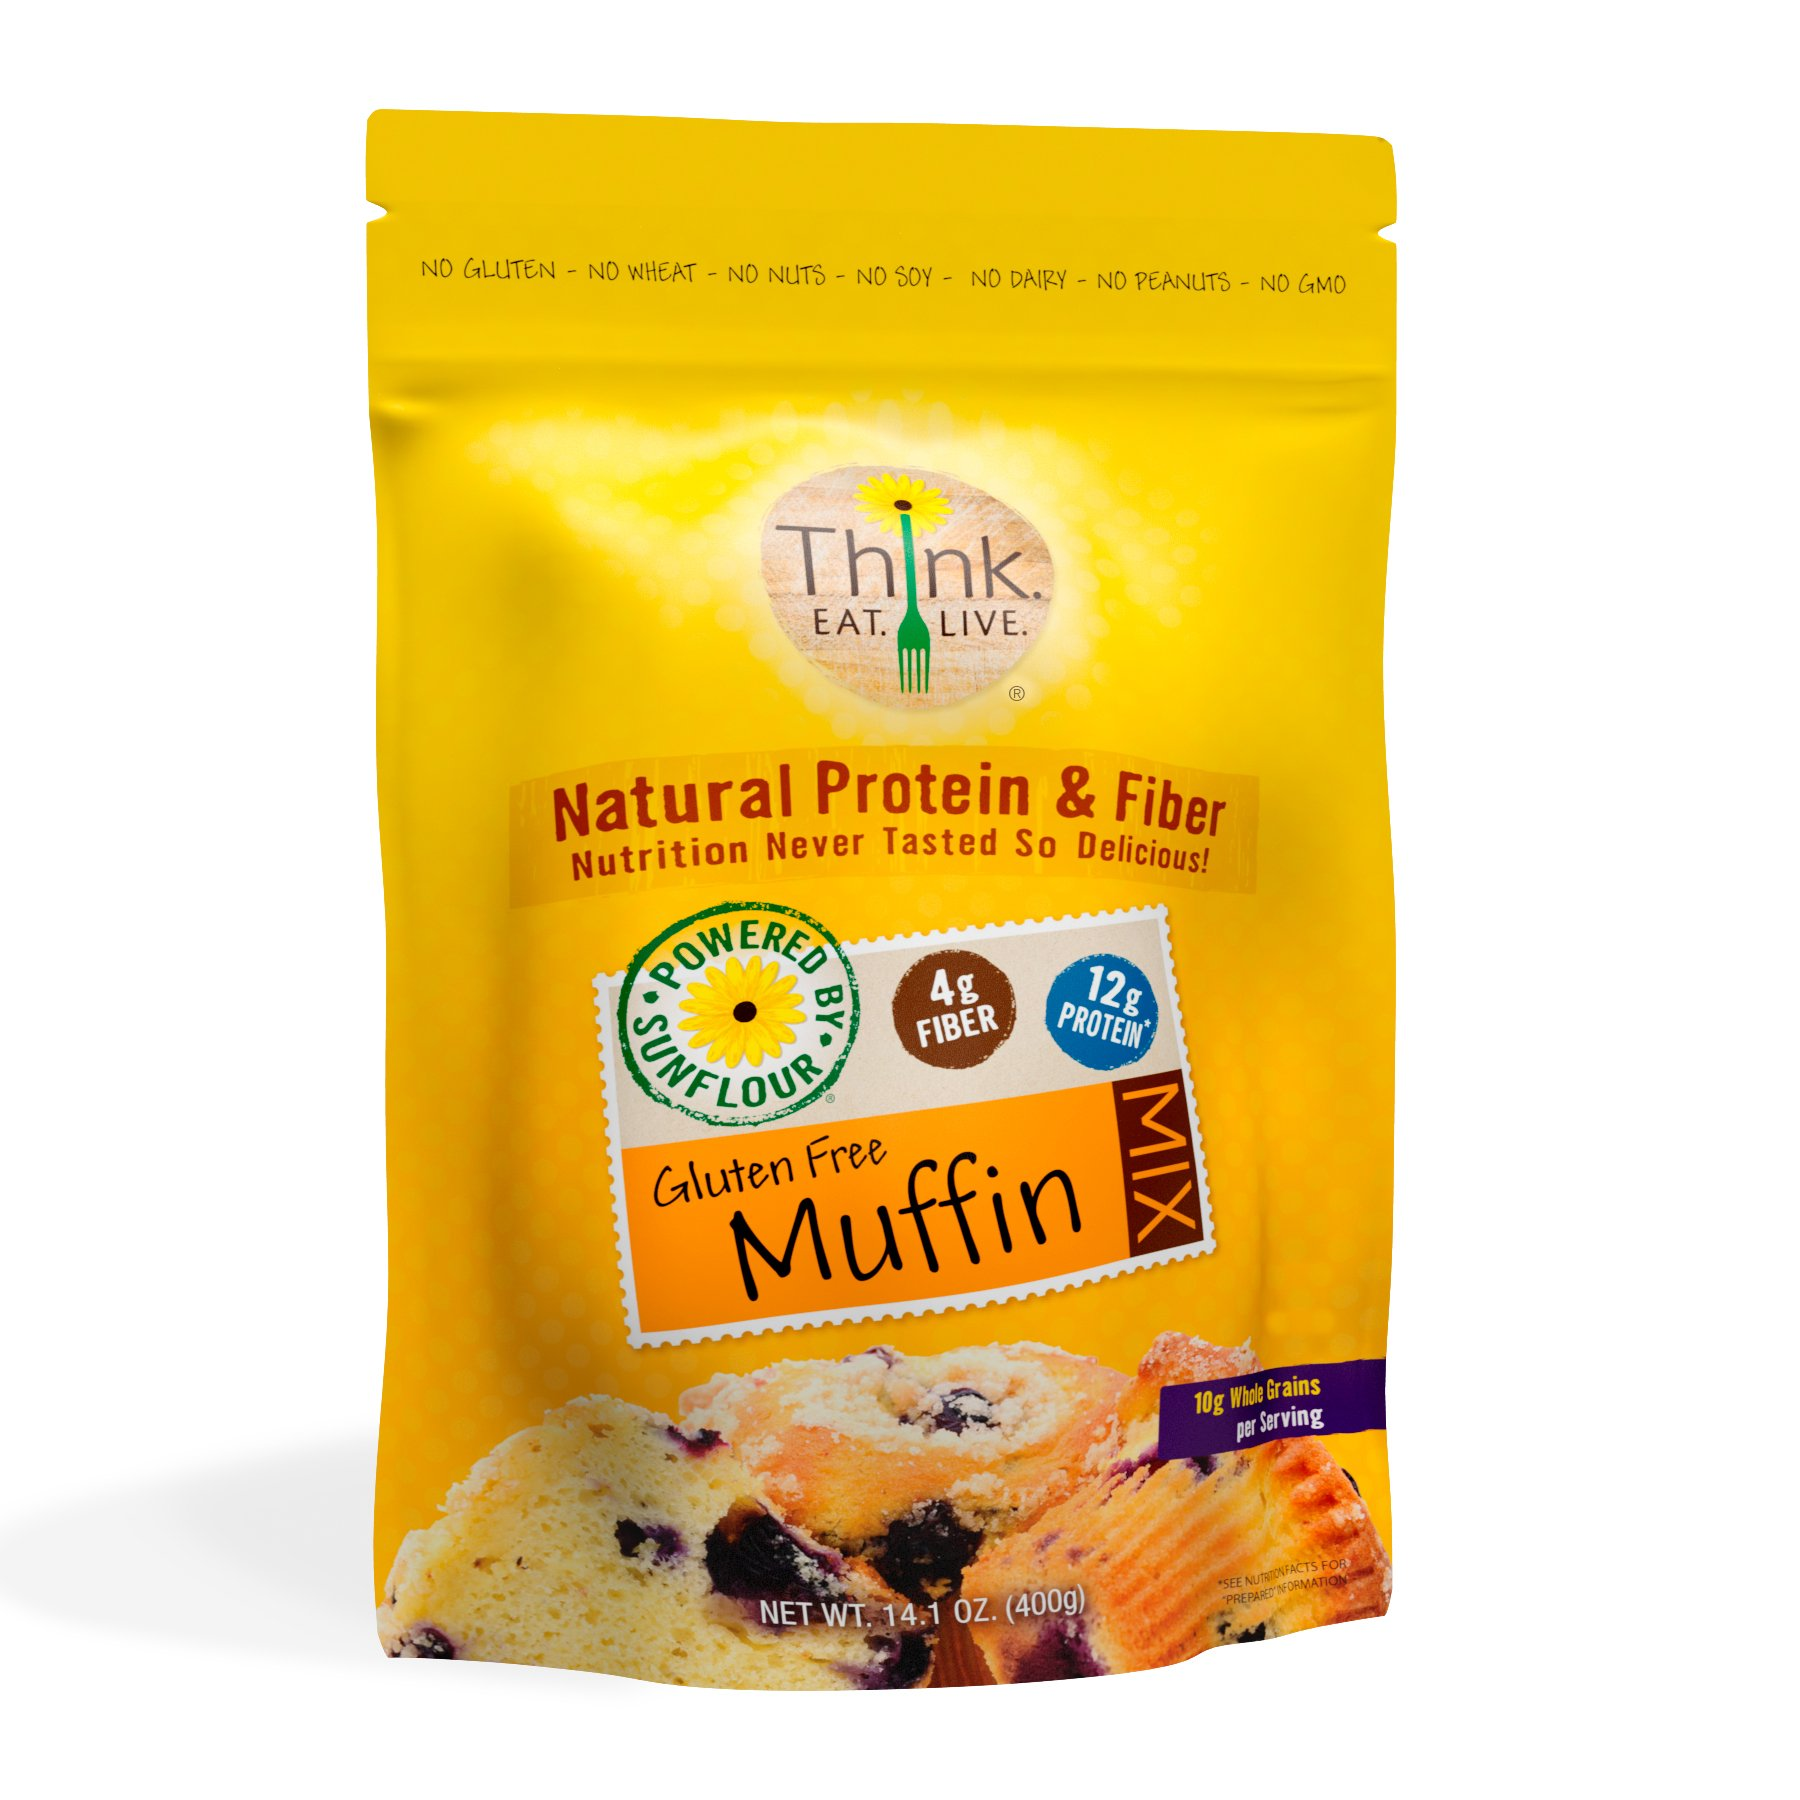 Think Eat Live Gluten Free Muffin Mix (14.1 oz.) | Sunflower Seed Flour, With Organic Natural Sweetener - High Protein, Quick and Easy Breakfast